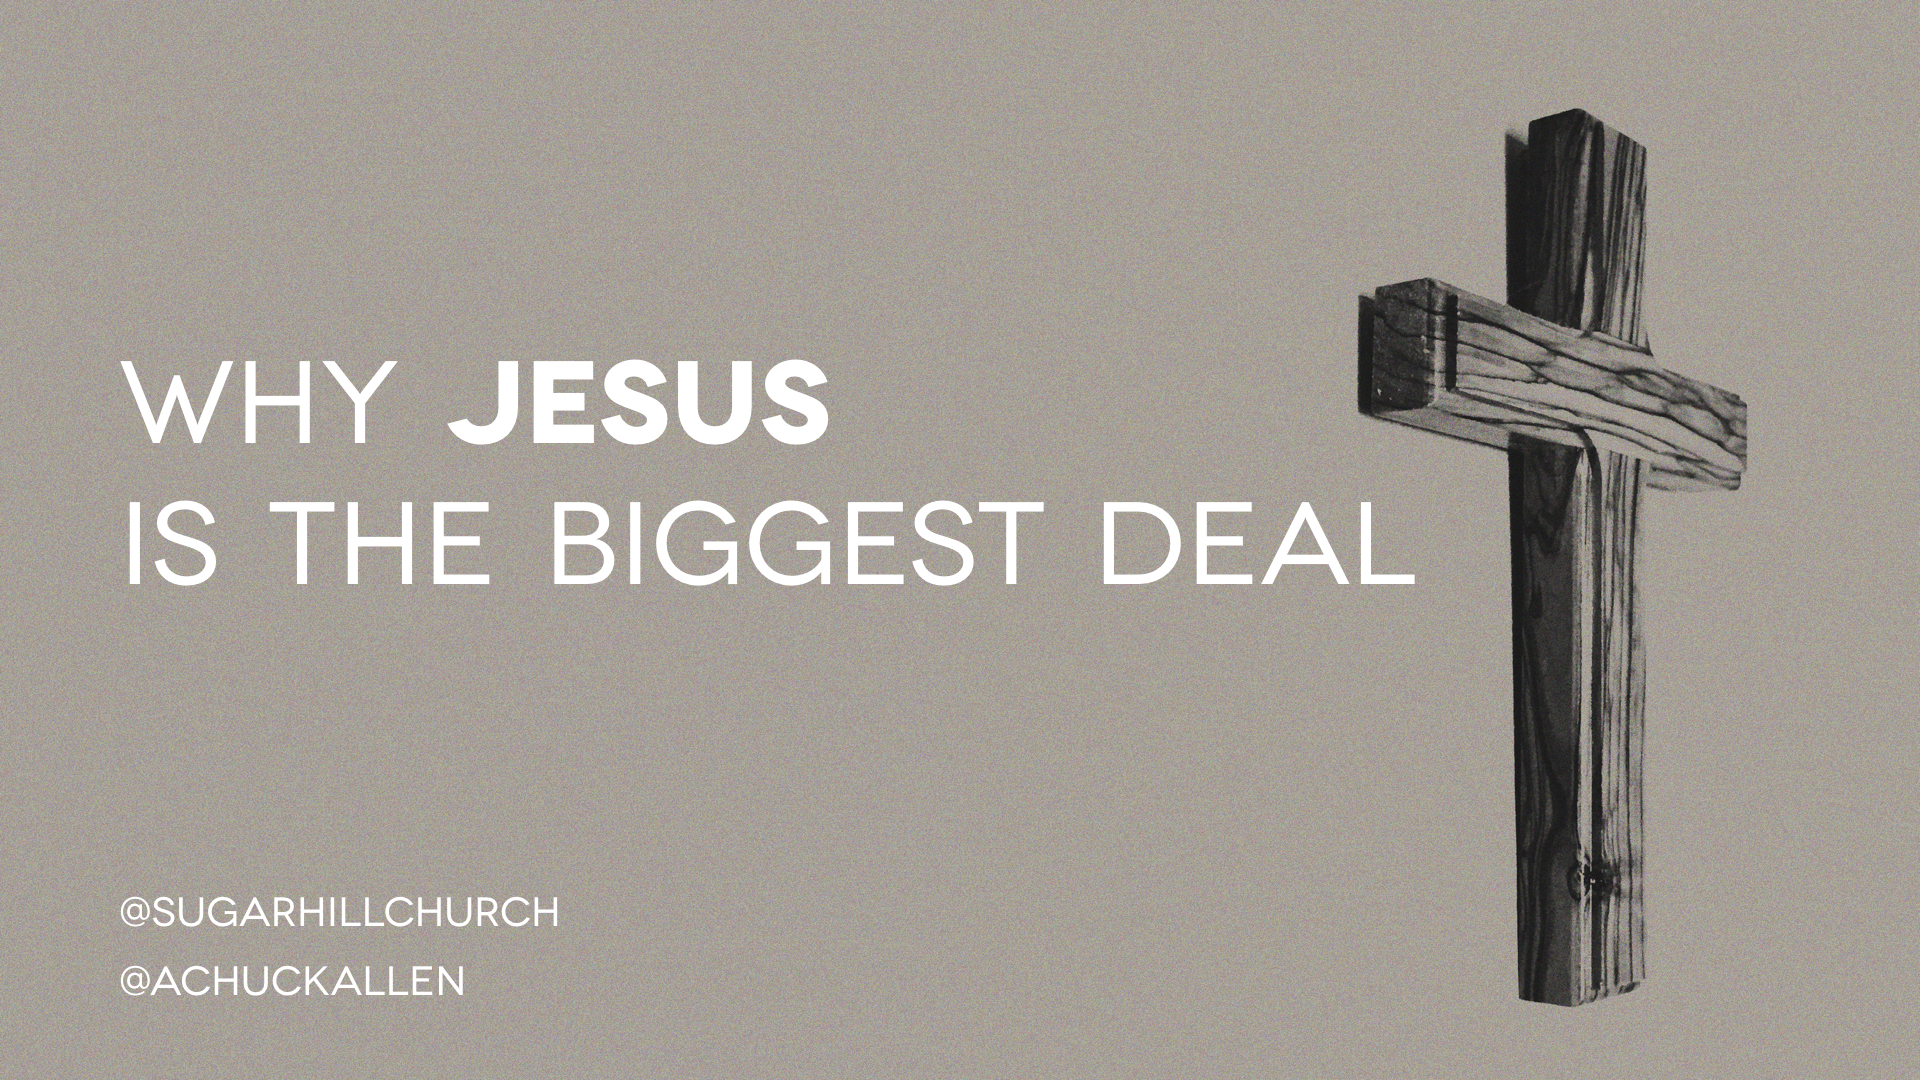 Why Jesus is the Biggest Deal